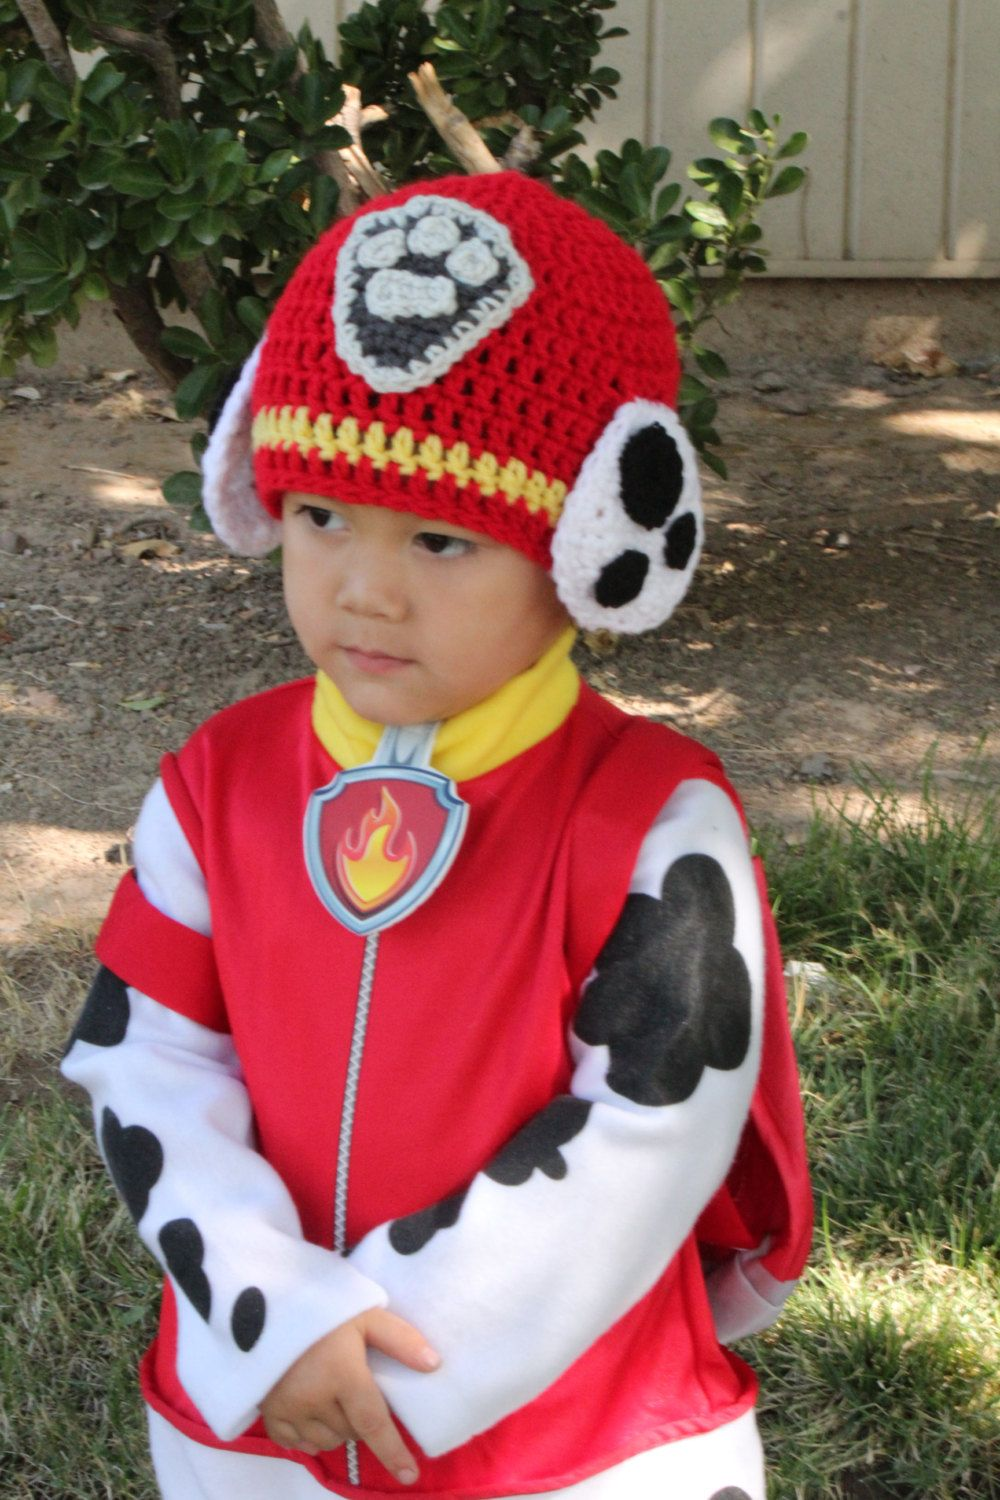 Paw Patrol Inspired Hat by SweetsCollection on Etsy | touca crochê ...